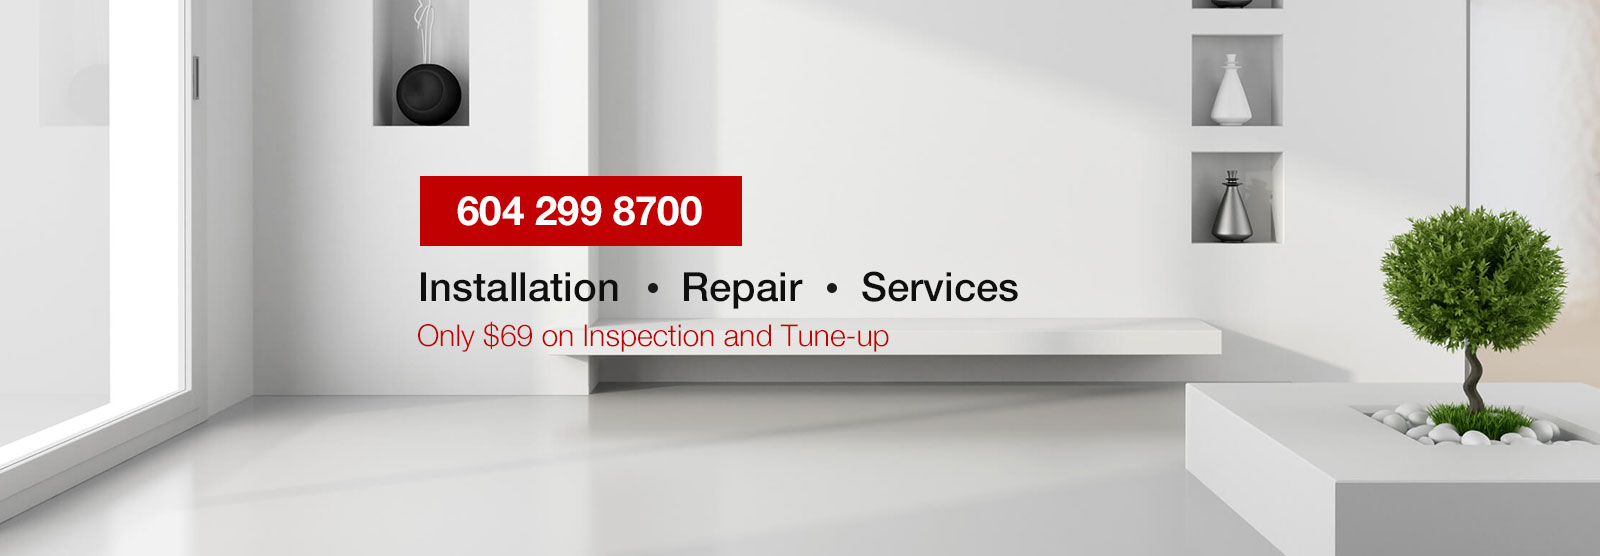 inspection-and-tune-up